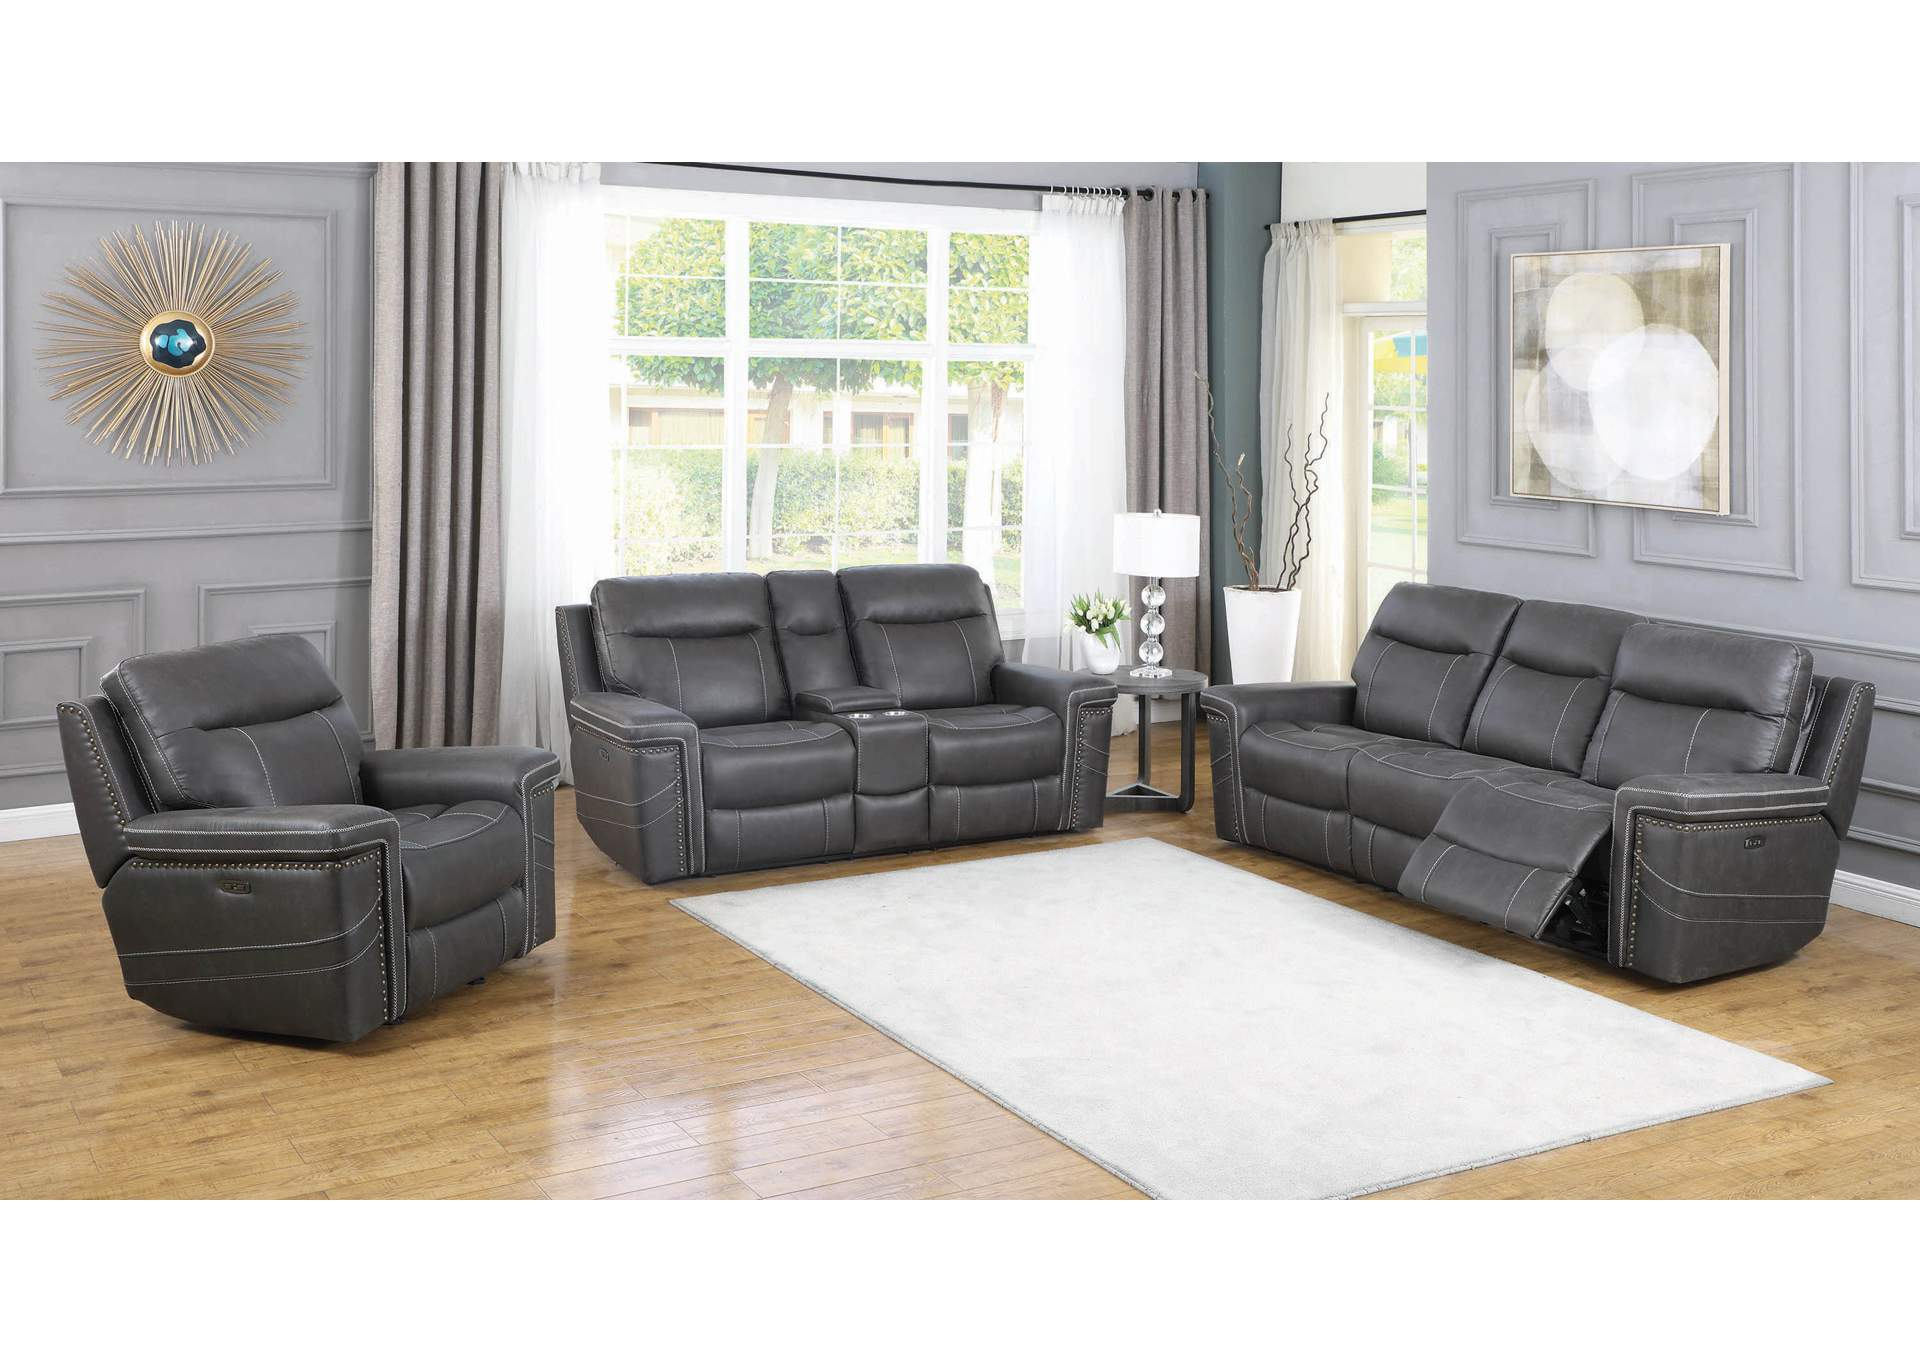 Wixom Gallery 10 Piece Power Reclining Living Room Set Home Gallery